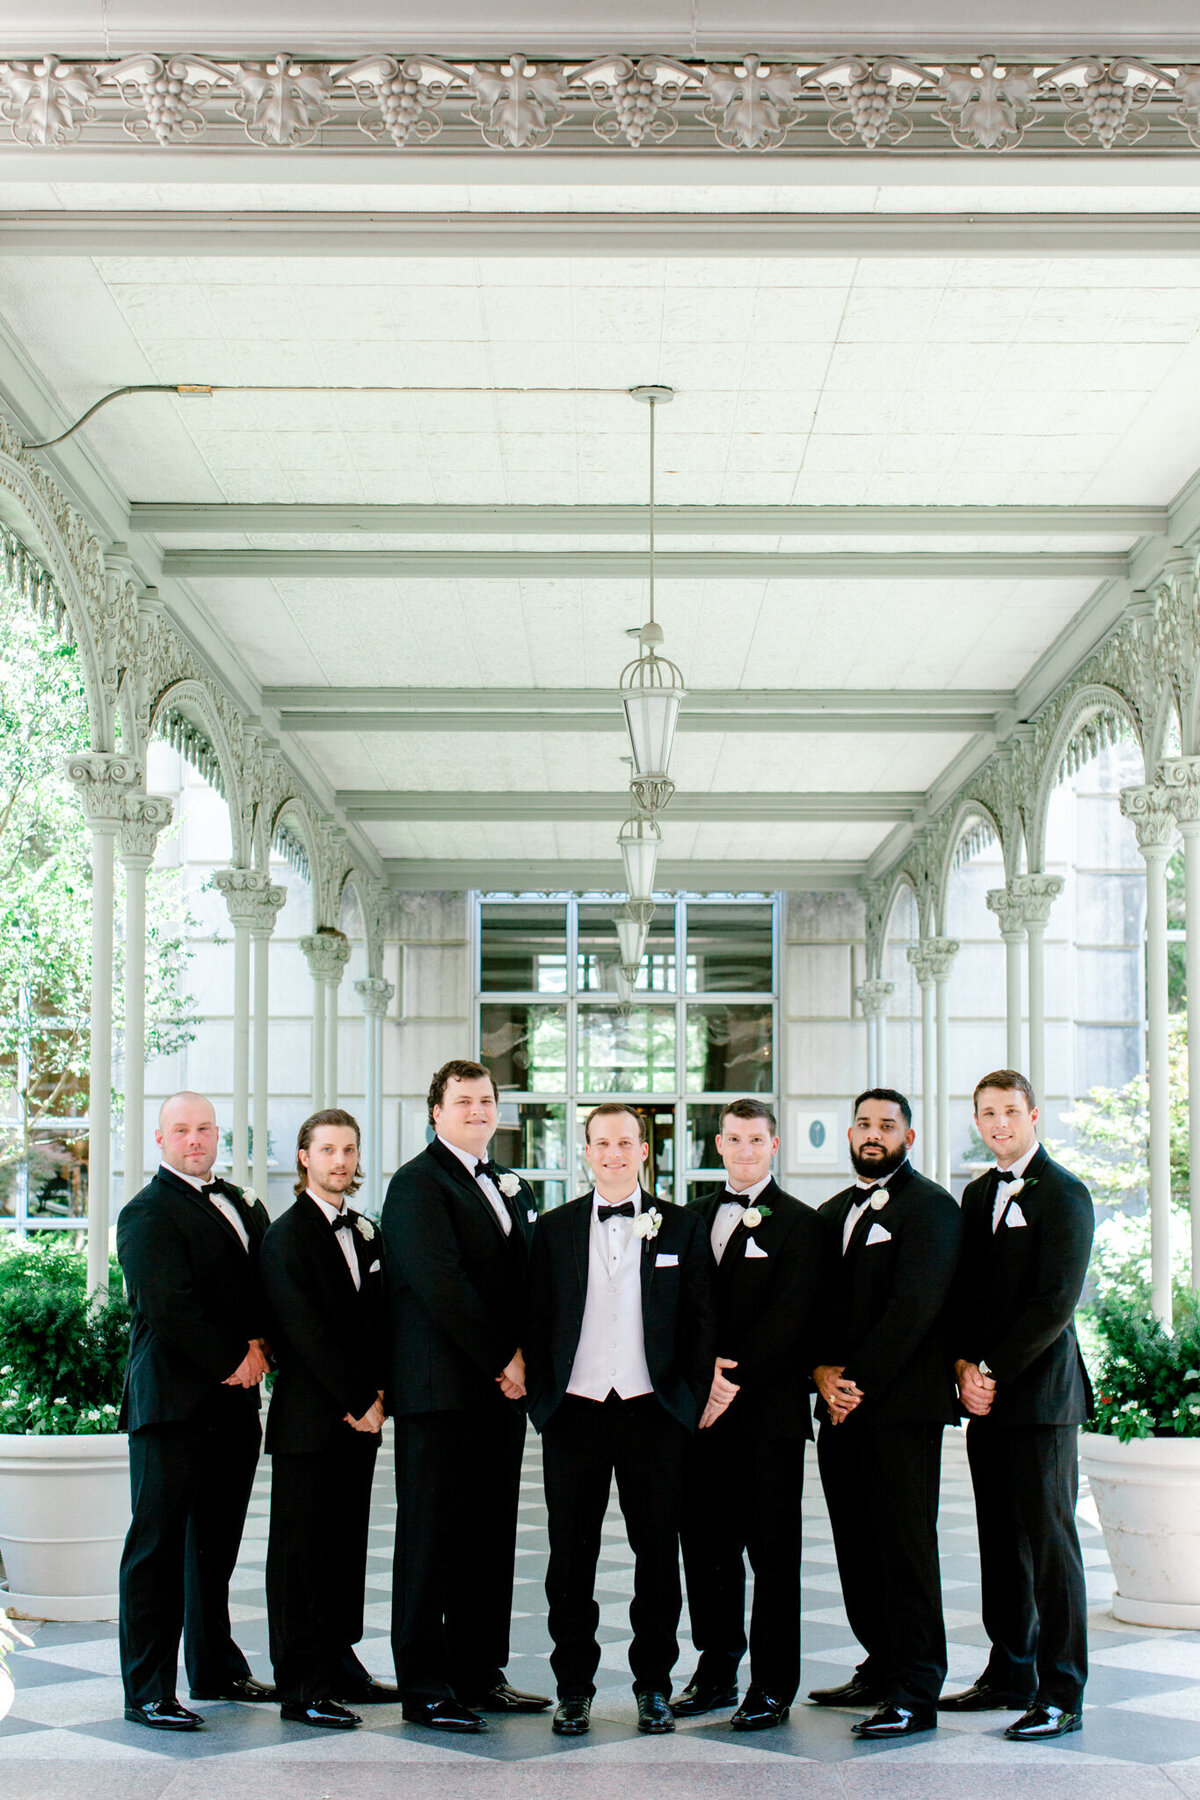 Wedding at the Crescent Court Hotel and Highland Park United Methodist Church in Dallas | Sami Kathryn Photography | DFW Wedding Photographer-87